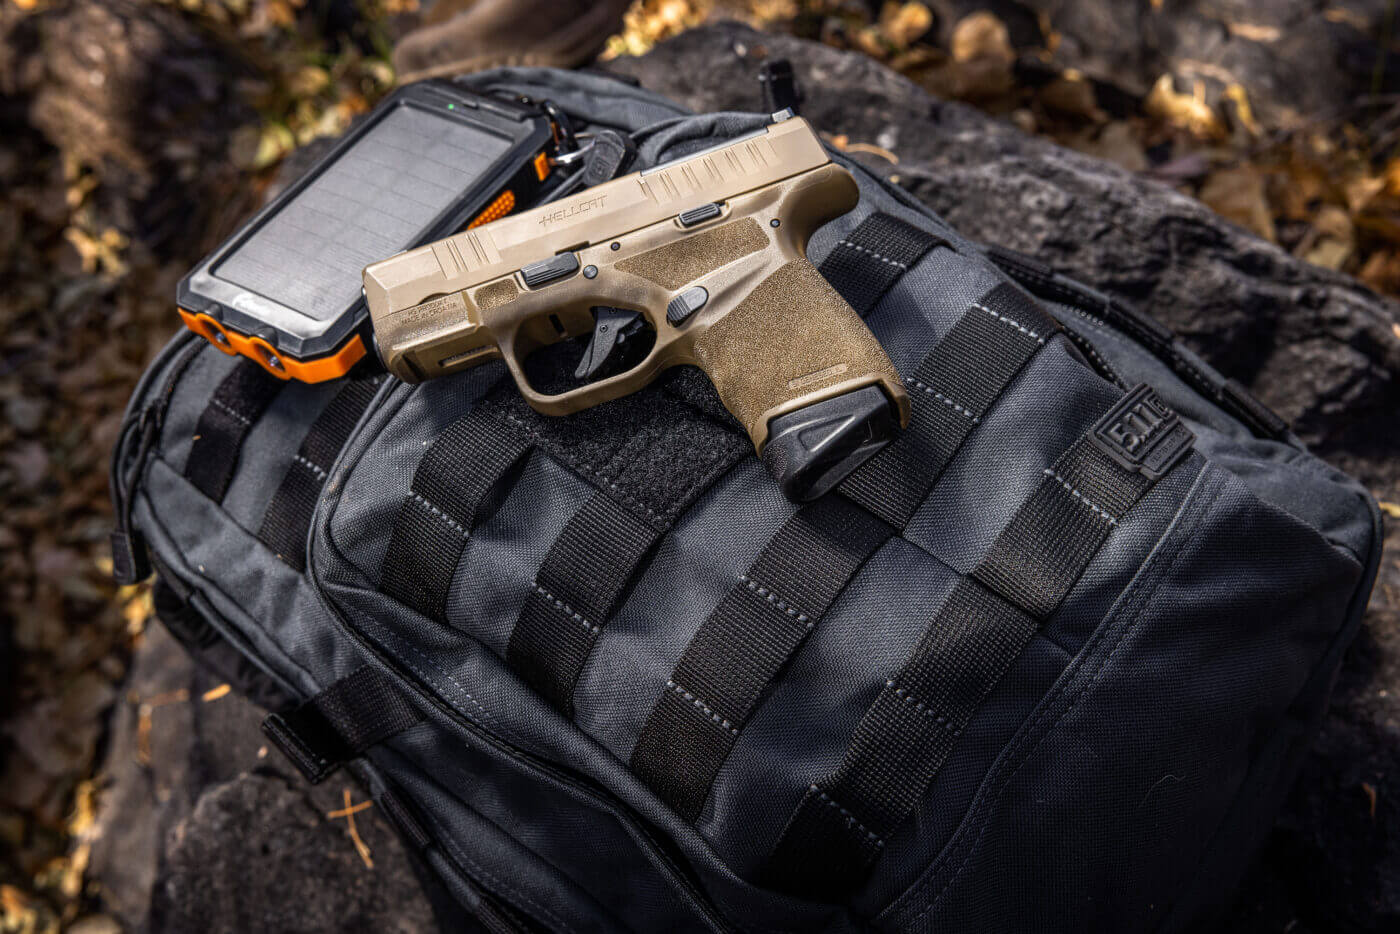 5.11 Tactical RUSH Bag with Hellcat pistol